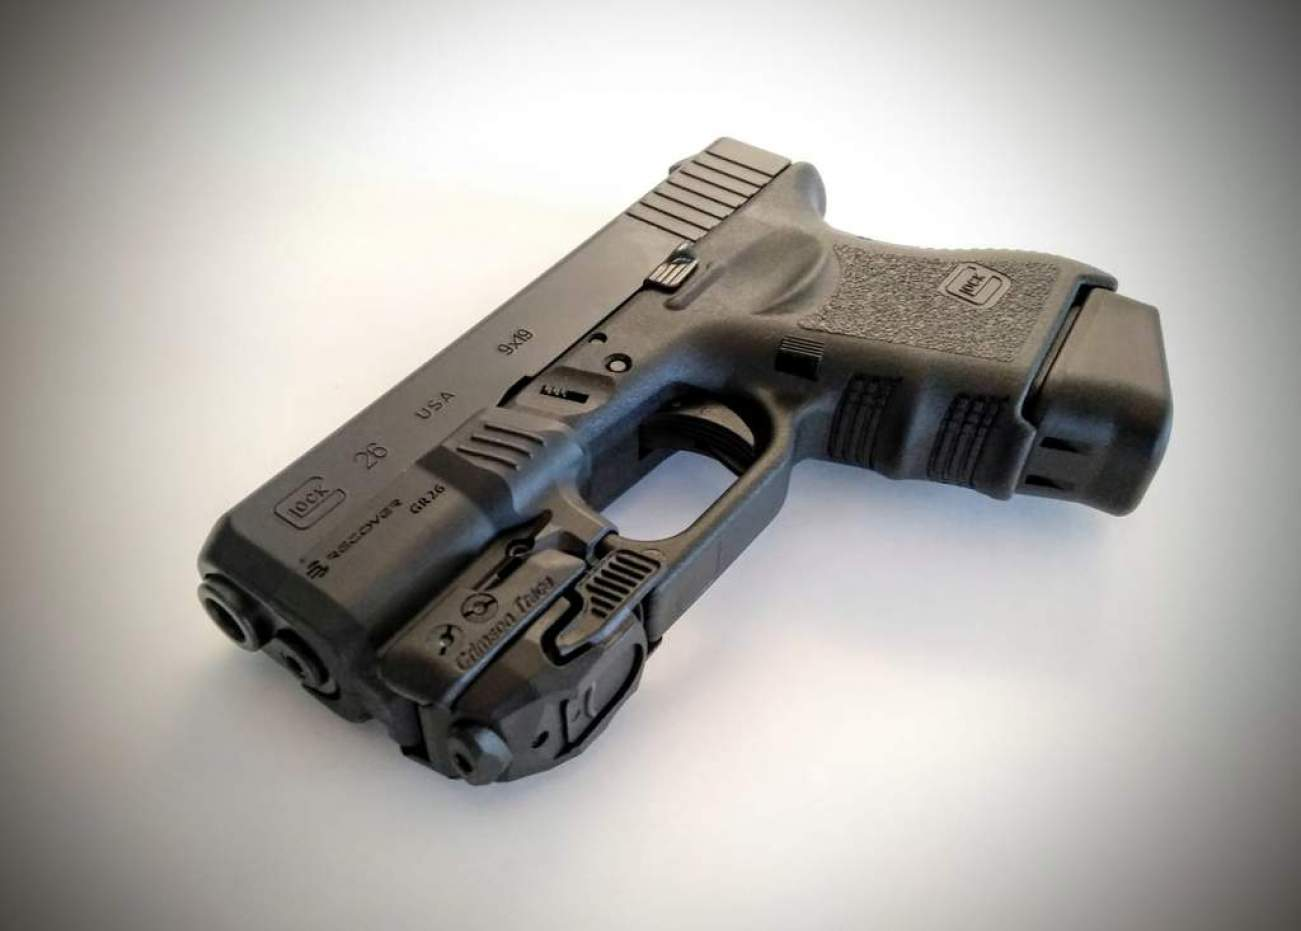 Need a Concealed Carry Gun for Protection? These 5 Are the Best.